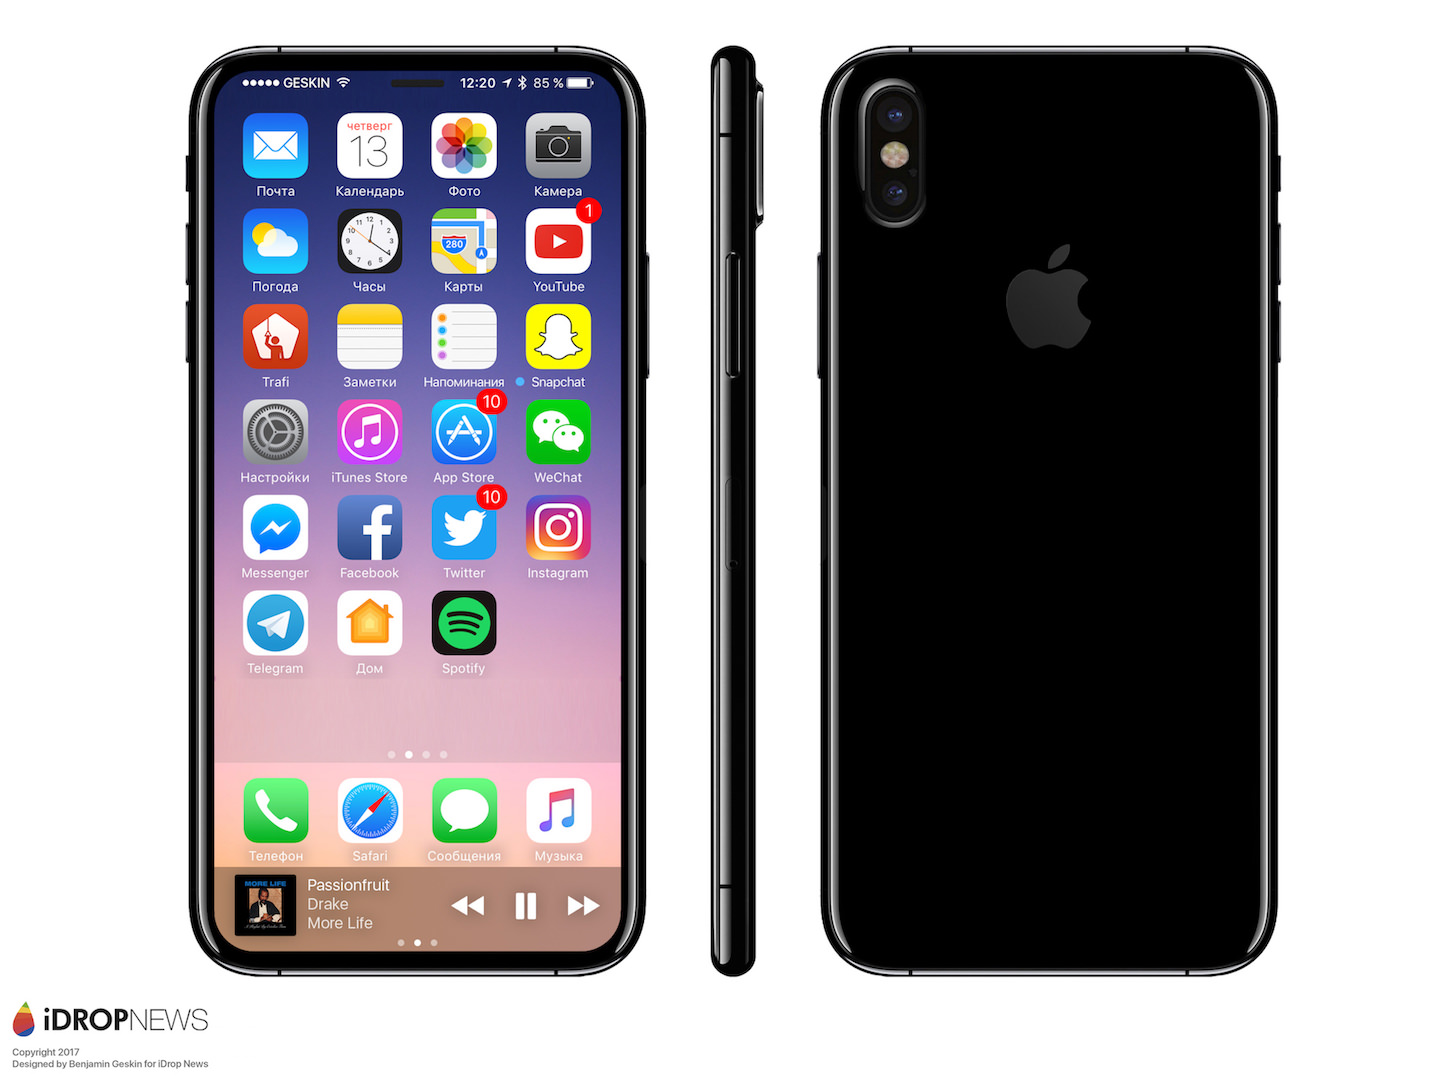 IDrop News Exclusive iPhone 8 Image 6